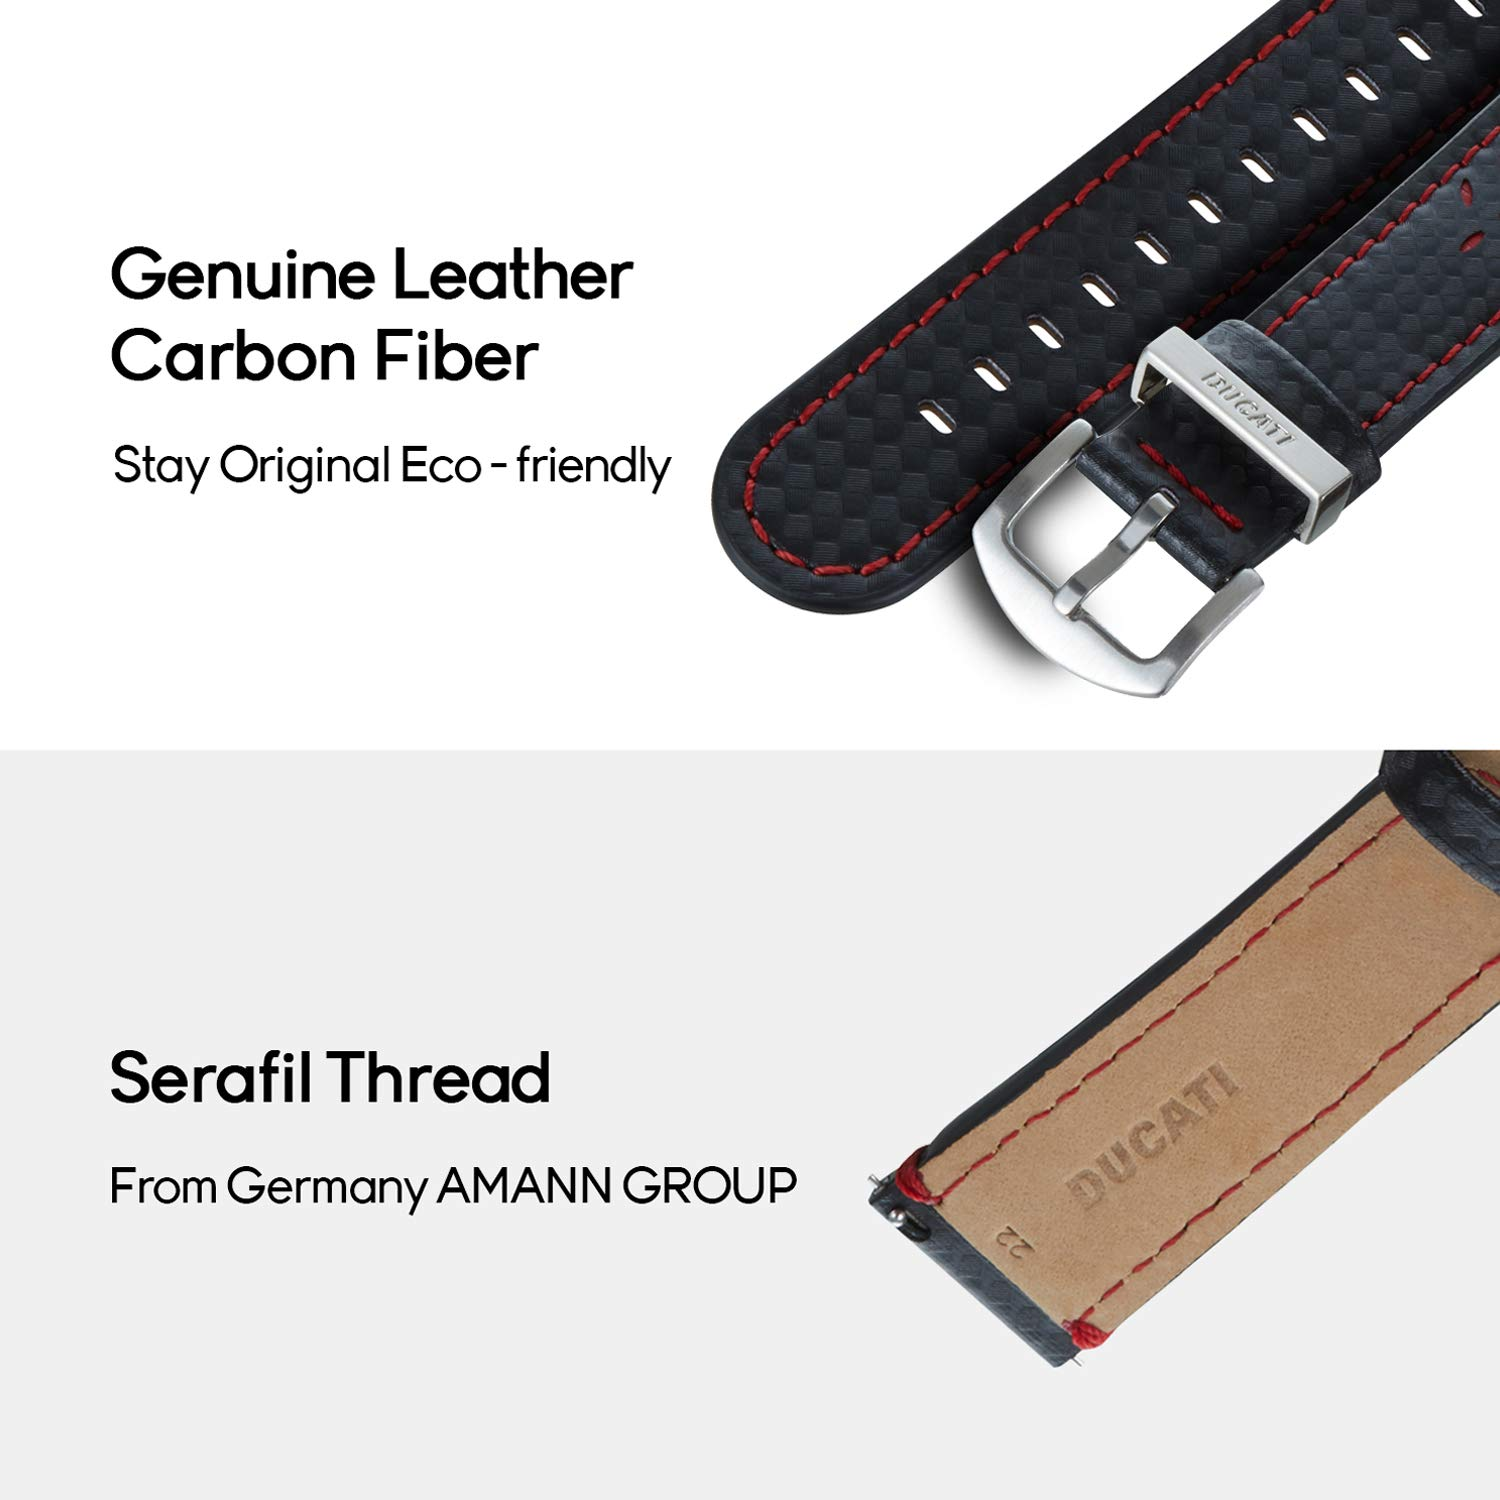 Mr. Time Smart Watch Band for Apple Watch 44mm 42mm, [Ducati Special Edition] Genuine Leather Sport Strap Replacement Bands Compatible for Apple Watch Series 4, 3, 2, 1 - Black by MR. TIME (Image #2)